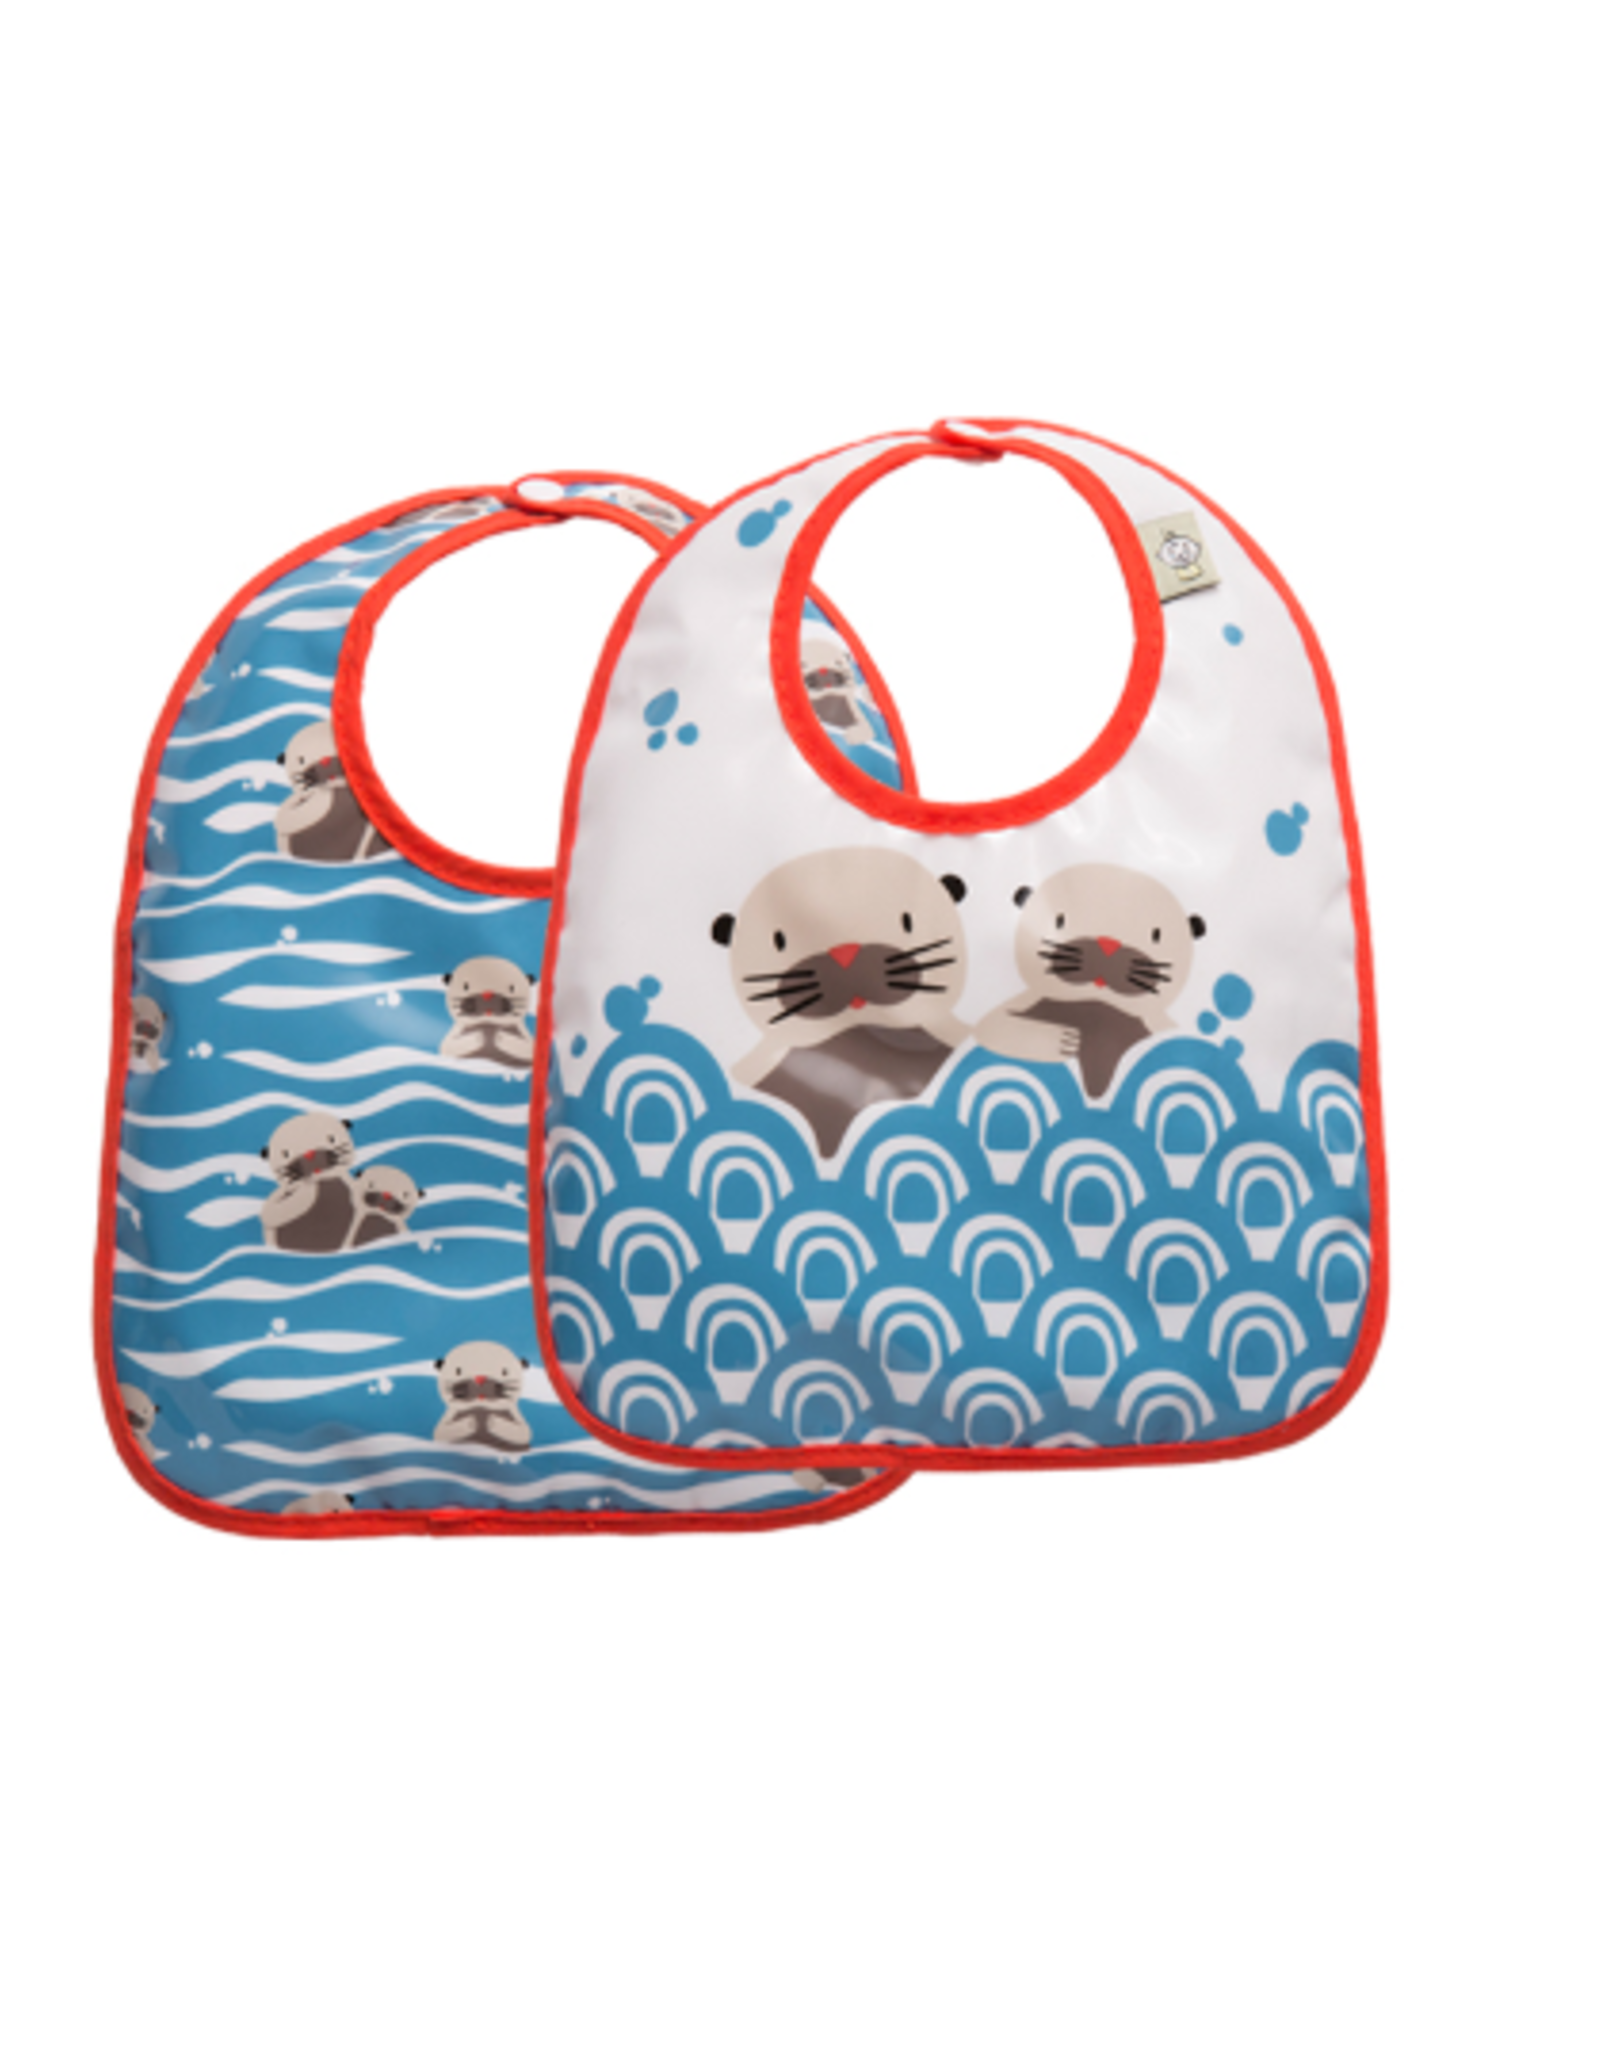 ORE Originals Mini Bib Set/2, Baby Otter